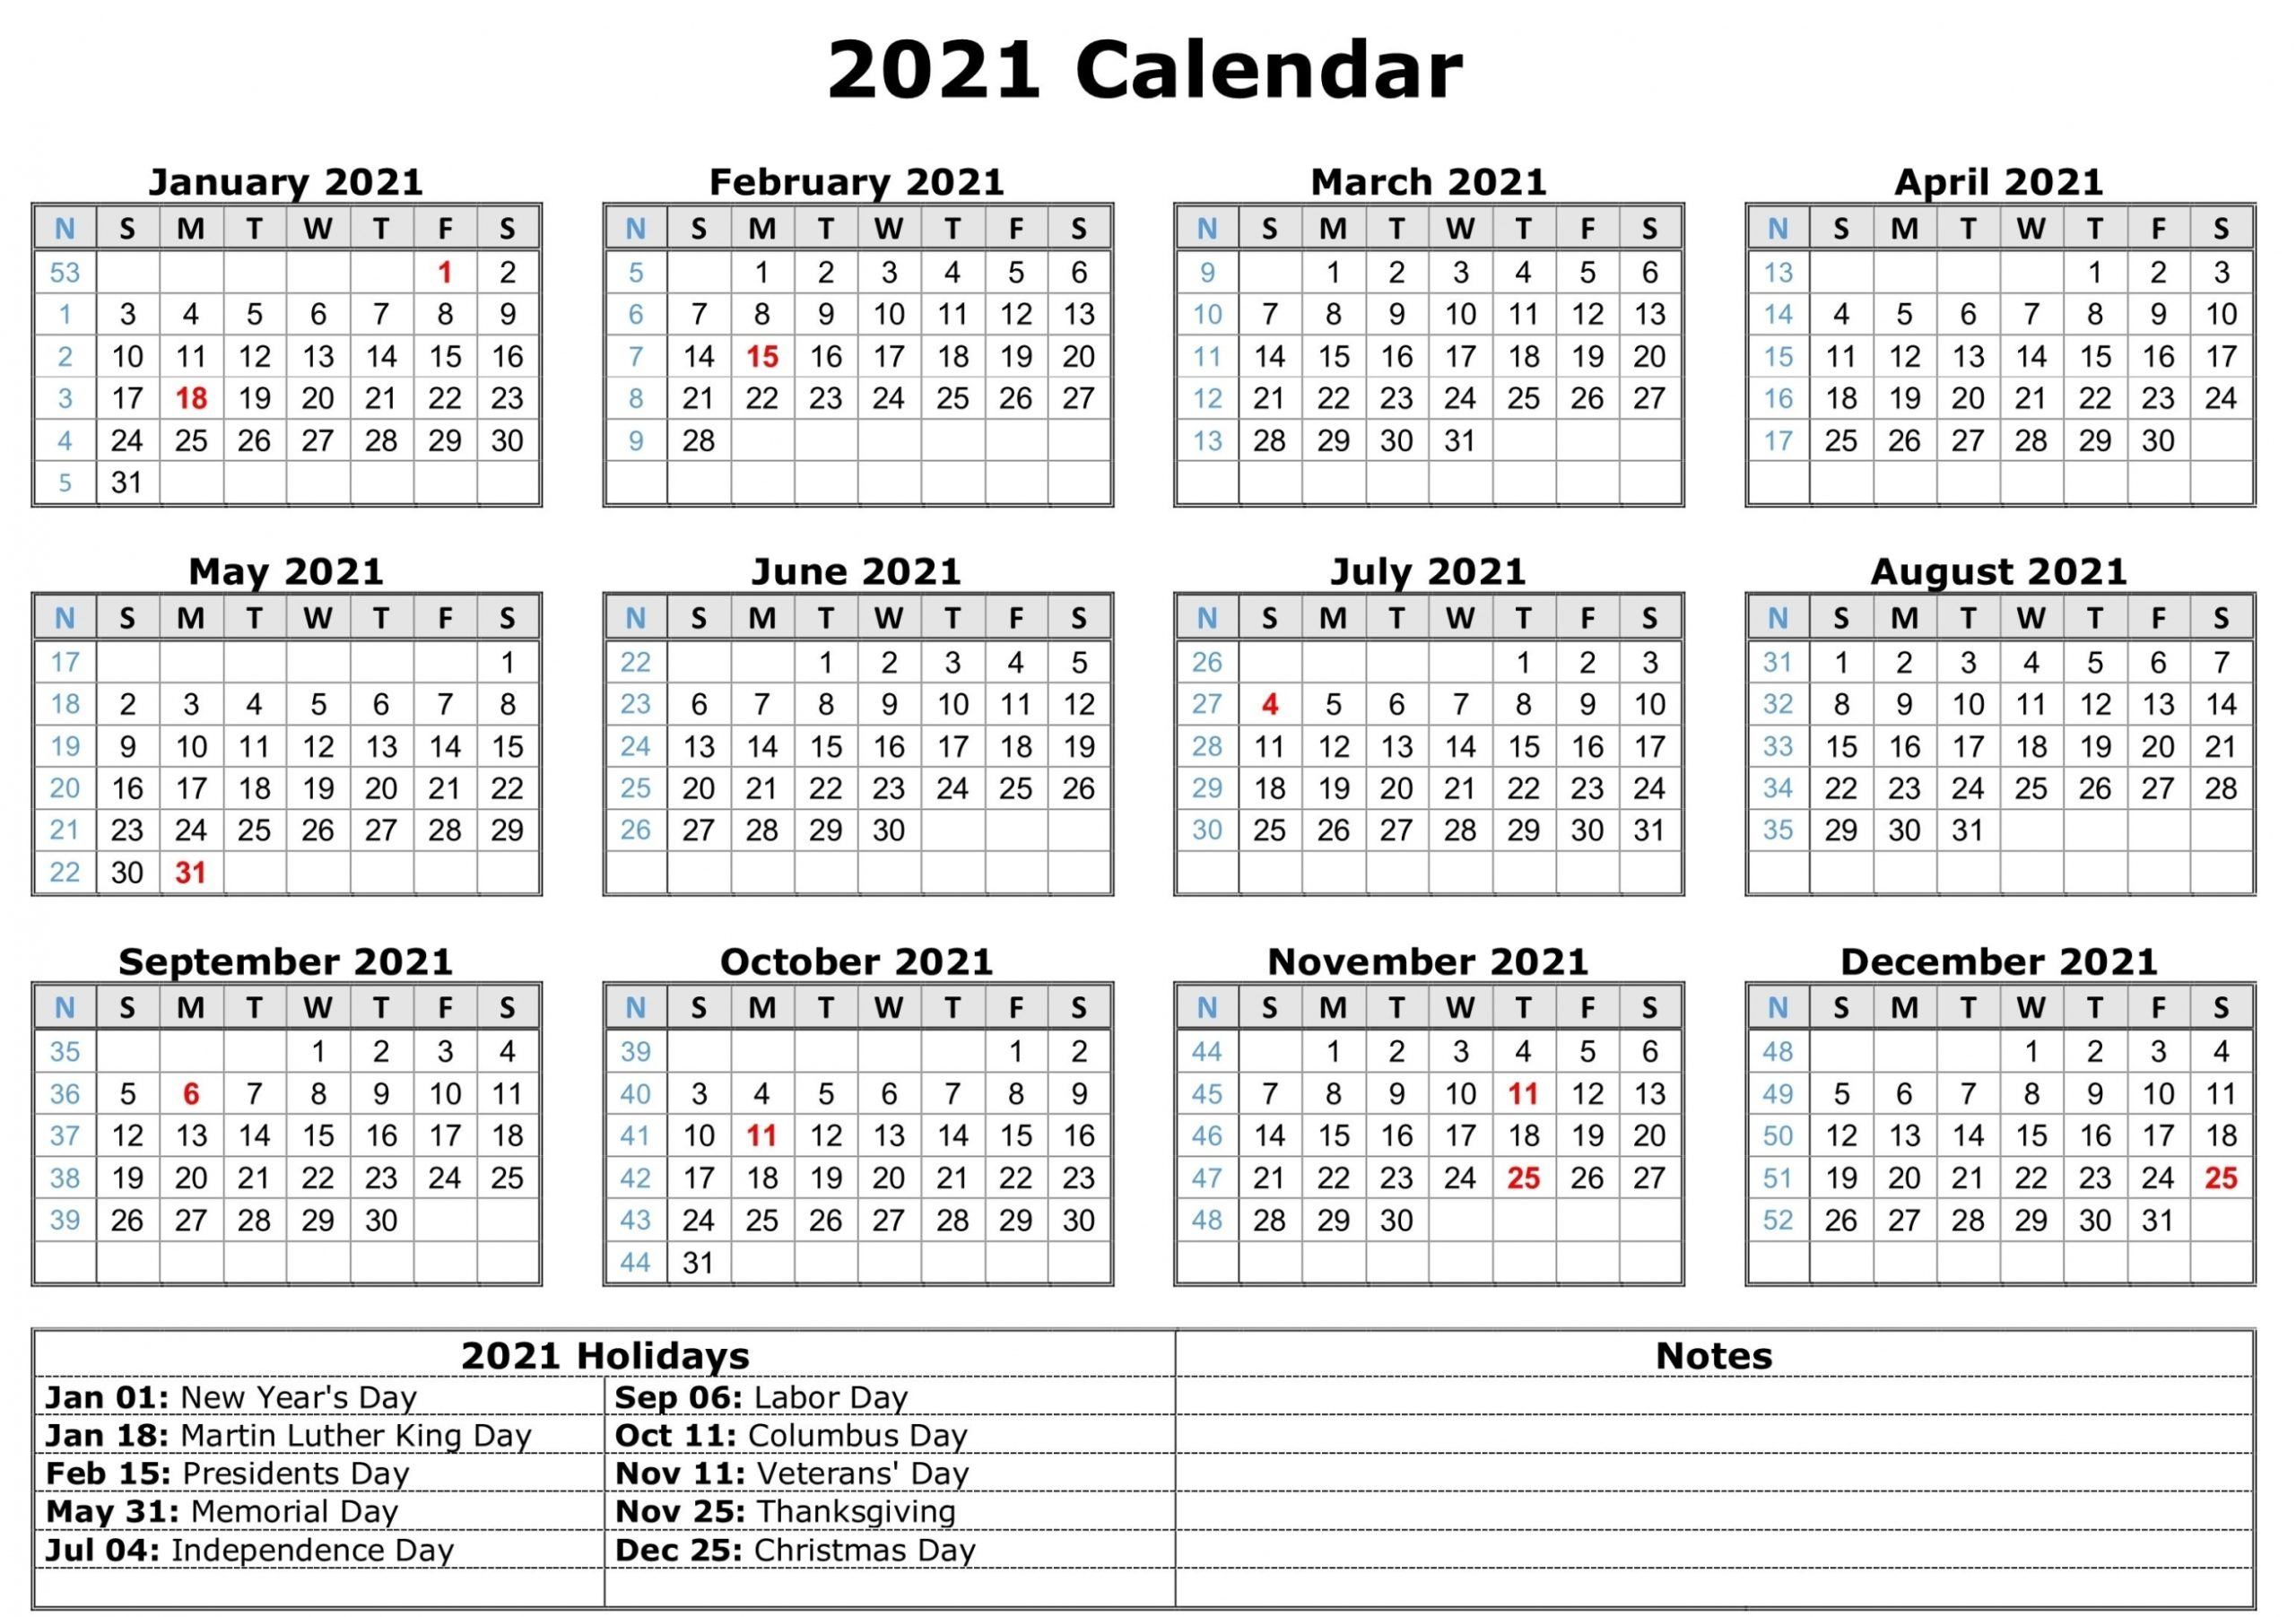 2021 Calendar One Page Template | Free Letter Templates